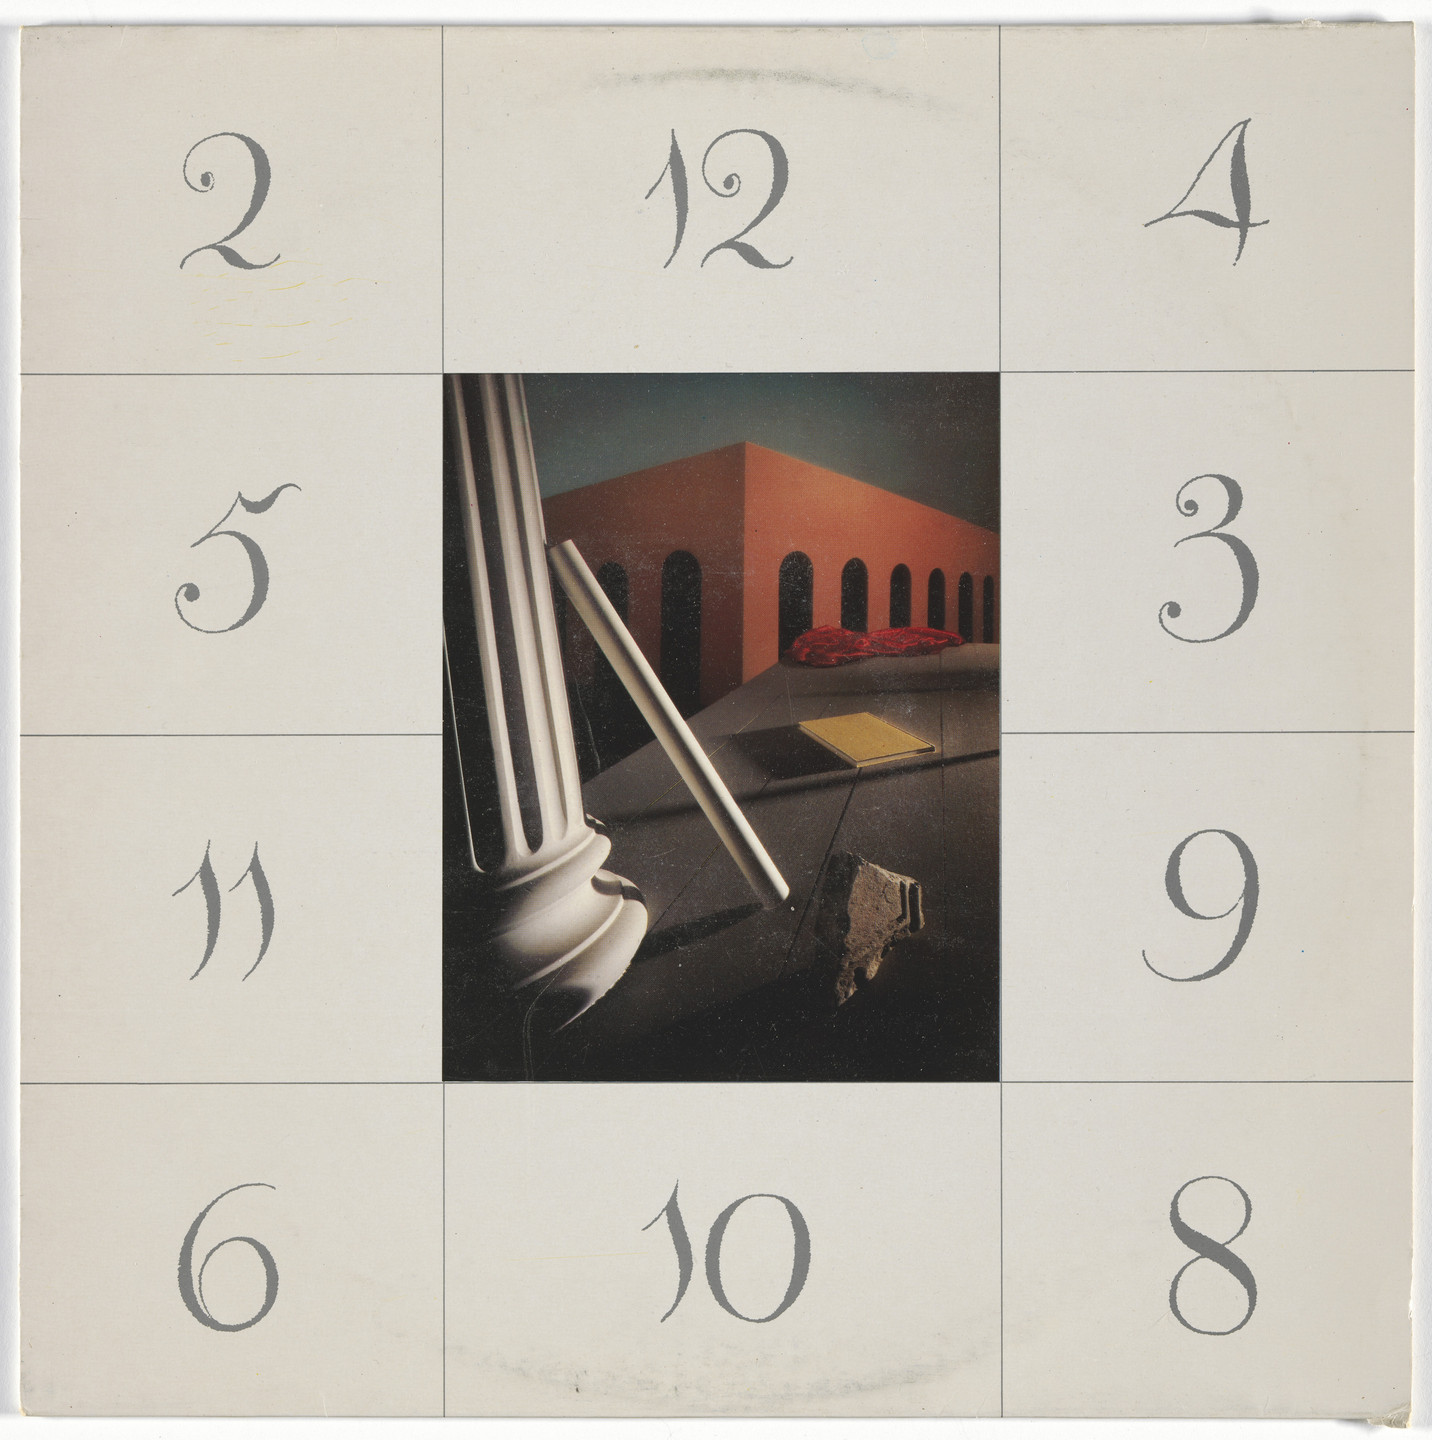 Peter Saville, Trevor Key, Factory Records, Manchester. Album cover for New Order, Thieves Like Us. 1984